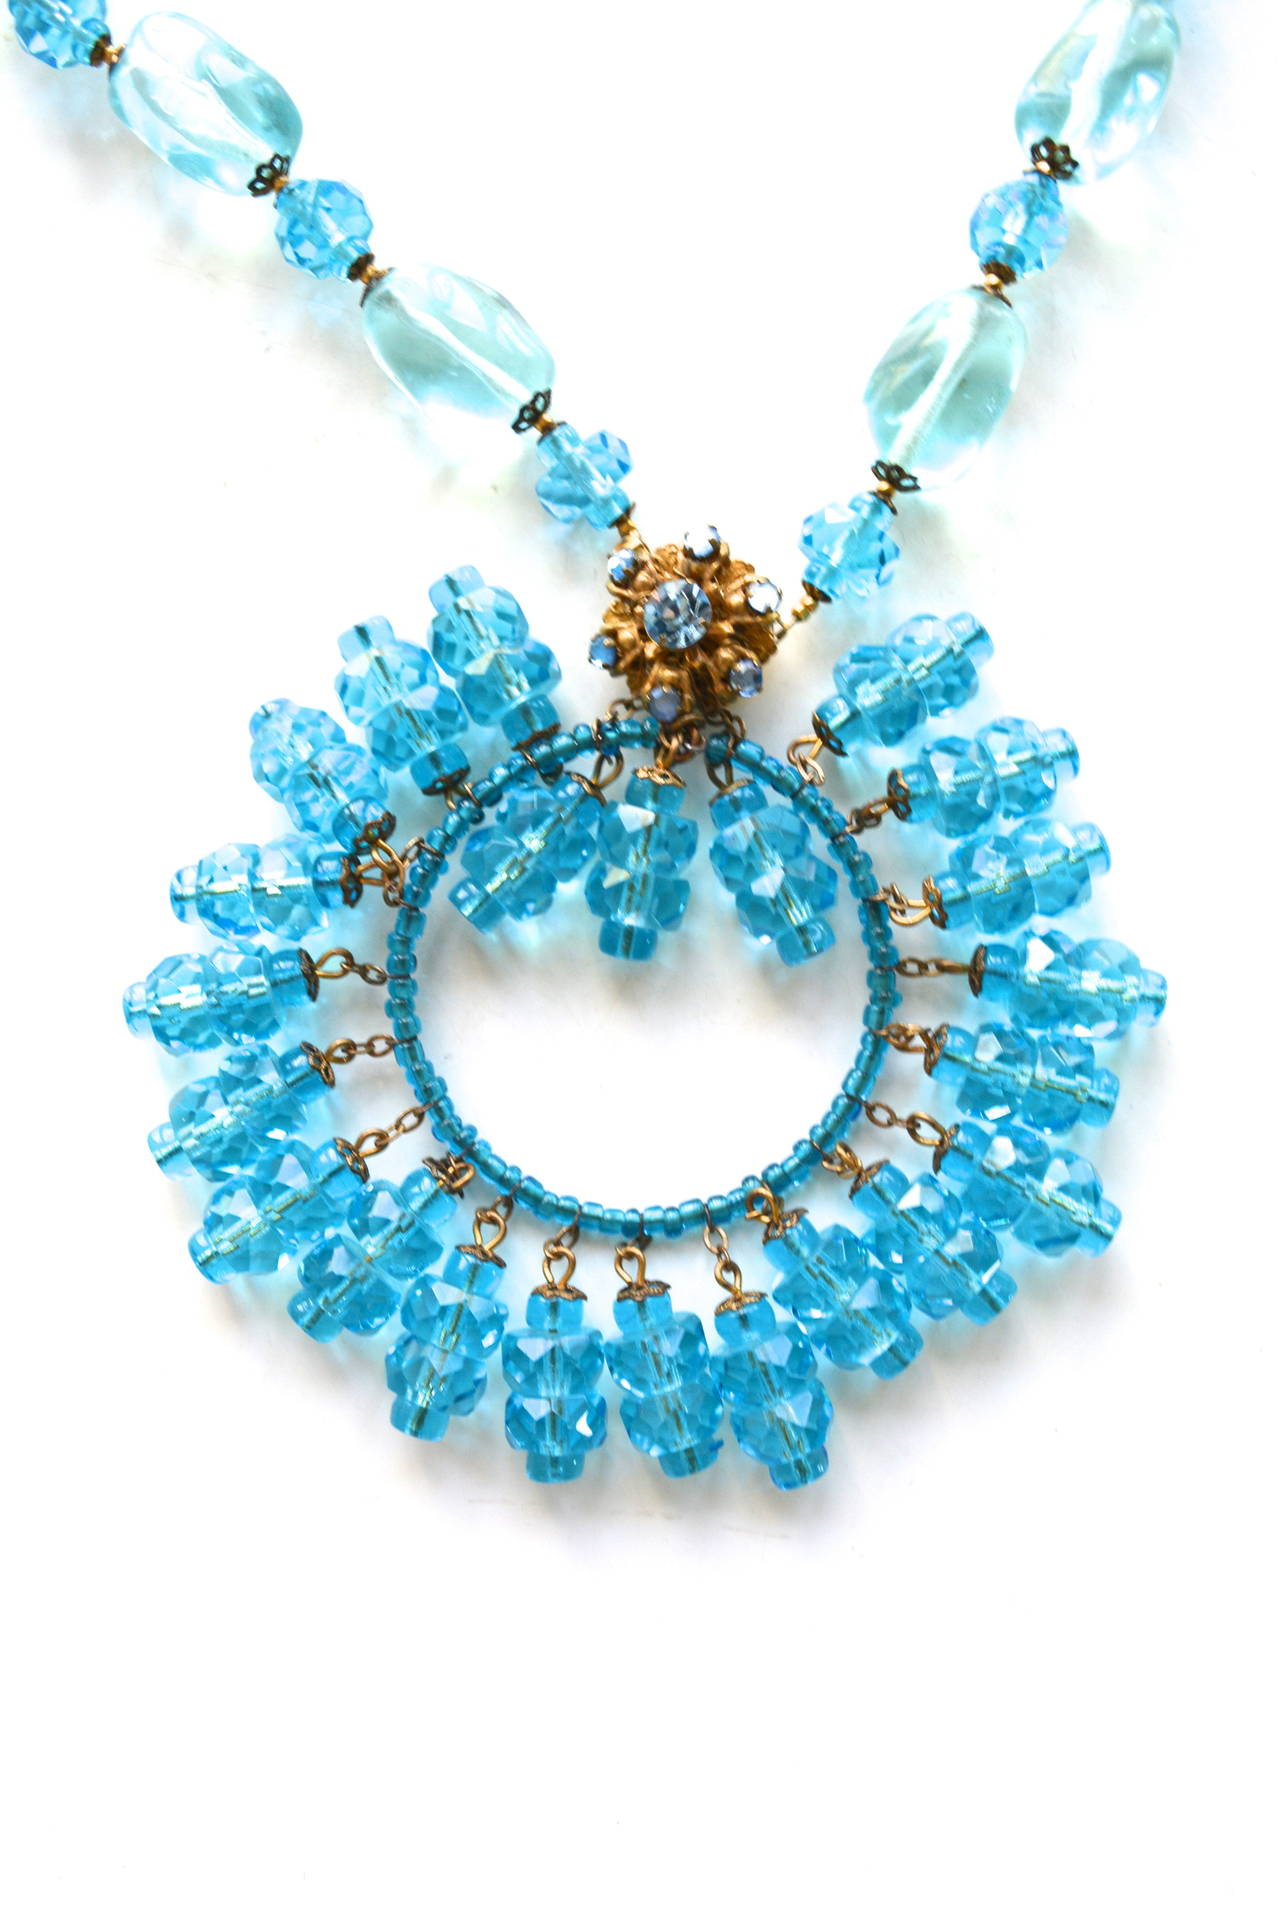 haskel jewelry miriam haskell maharaja necklace for sale at 1stdibs 1794